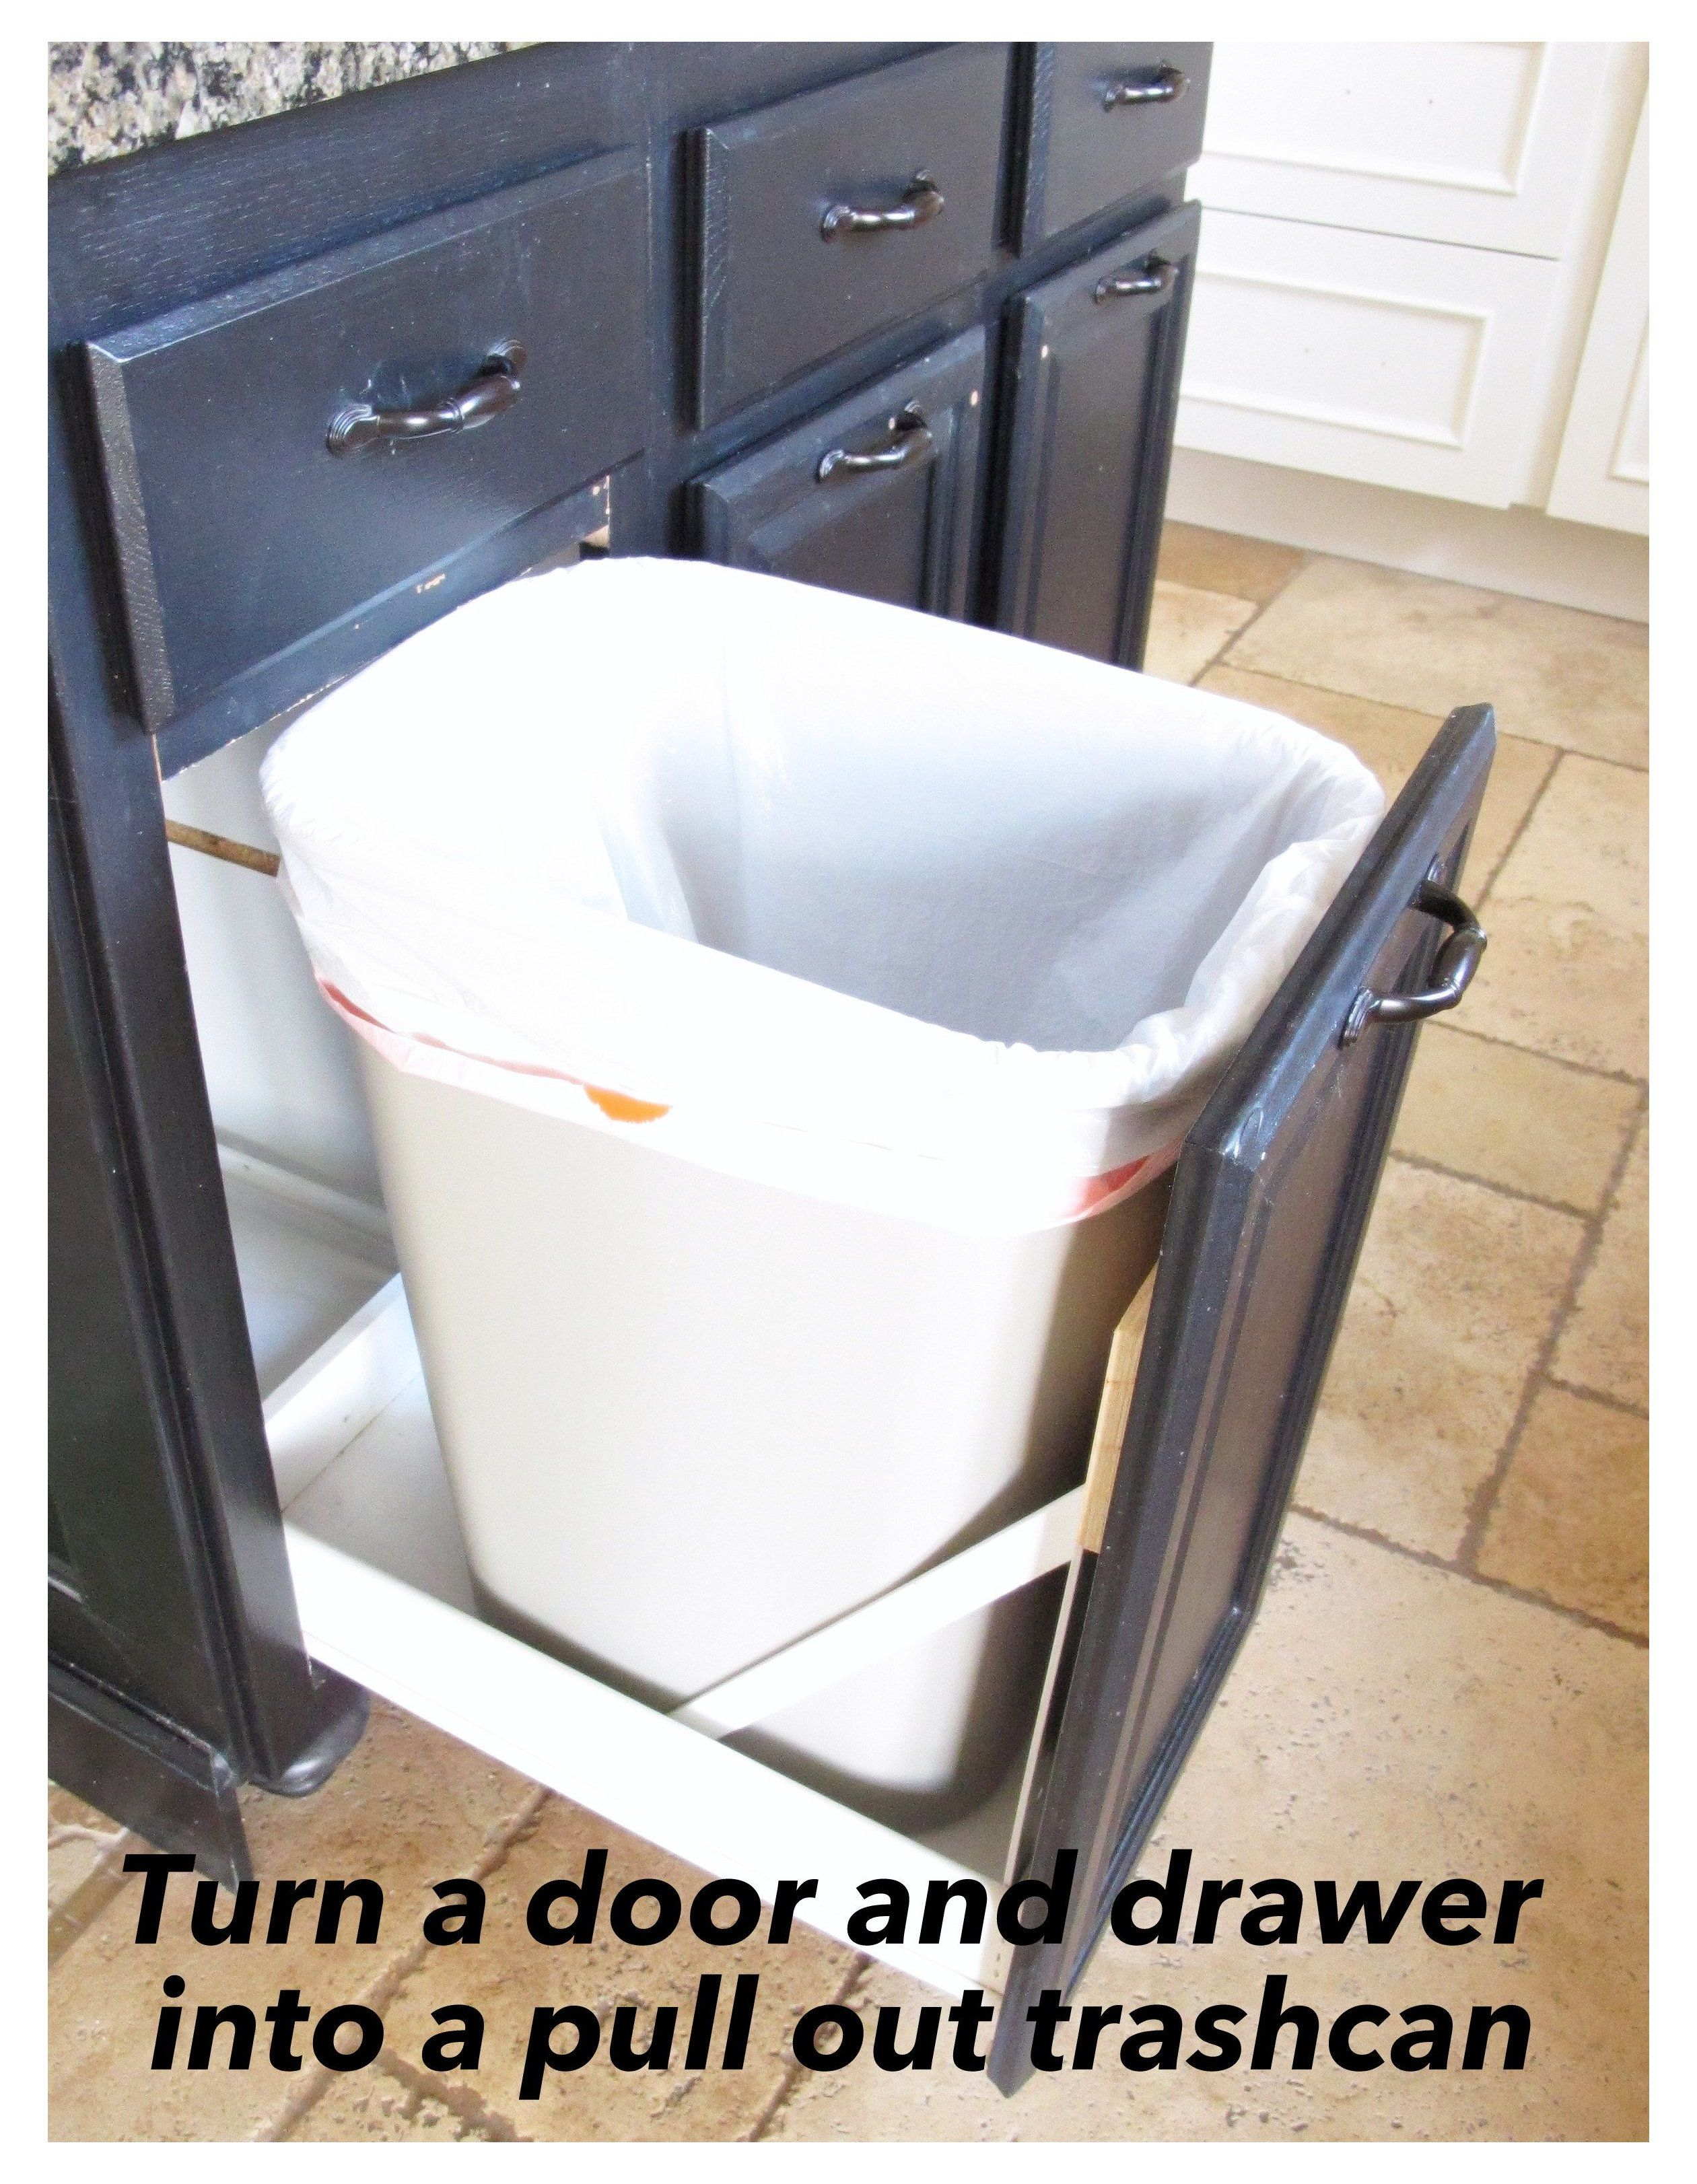 Turn A Door And A Drawer Into A Pull Out Trash Can Step By Step With Pictures On How To Turn A Door An In 2020 Kitchen Trash Cans Pull Out